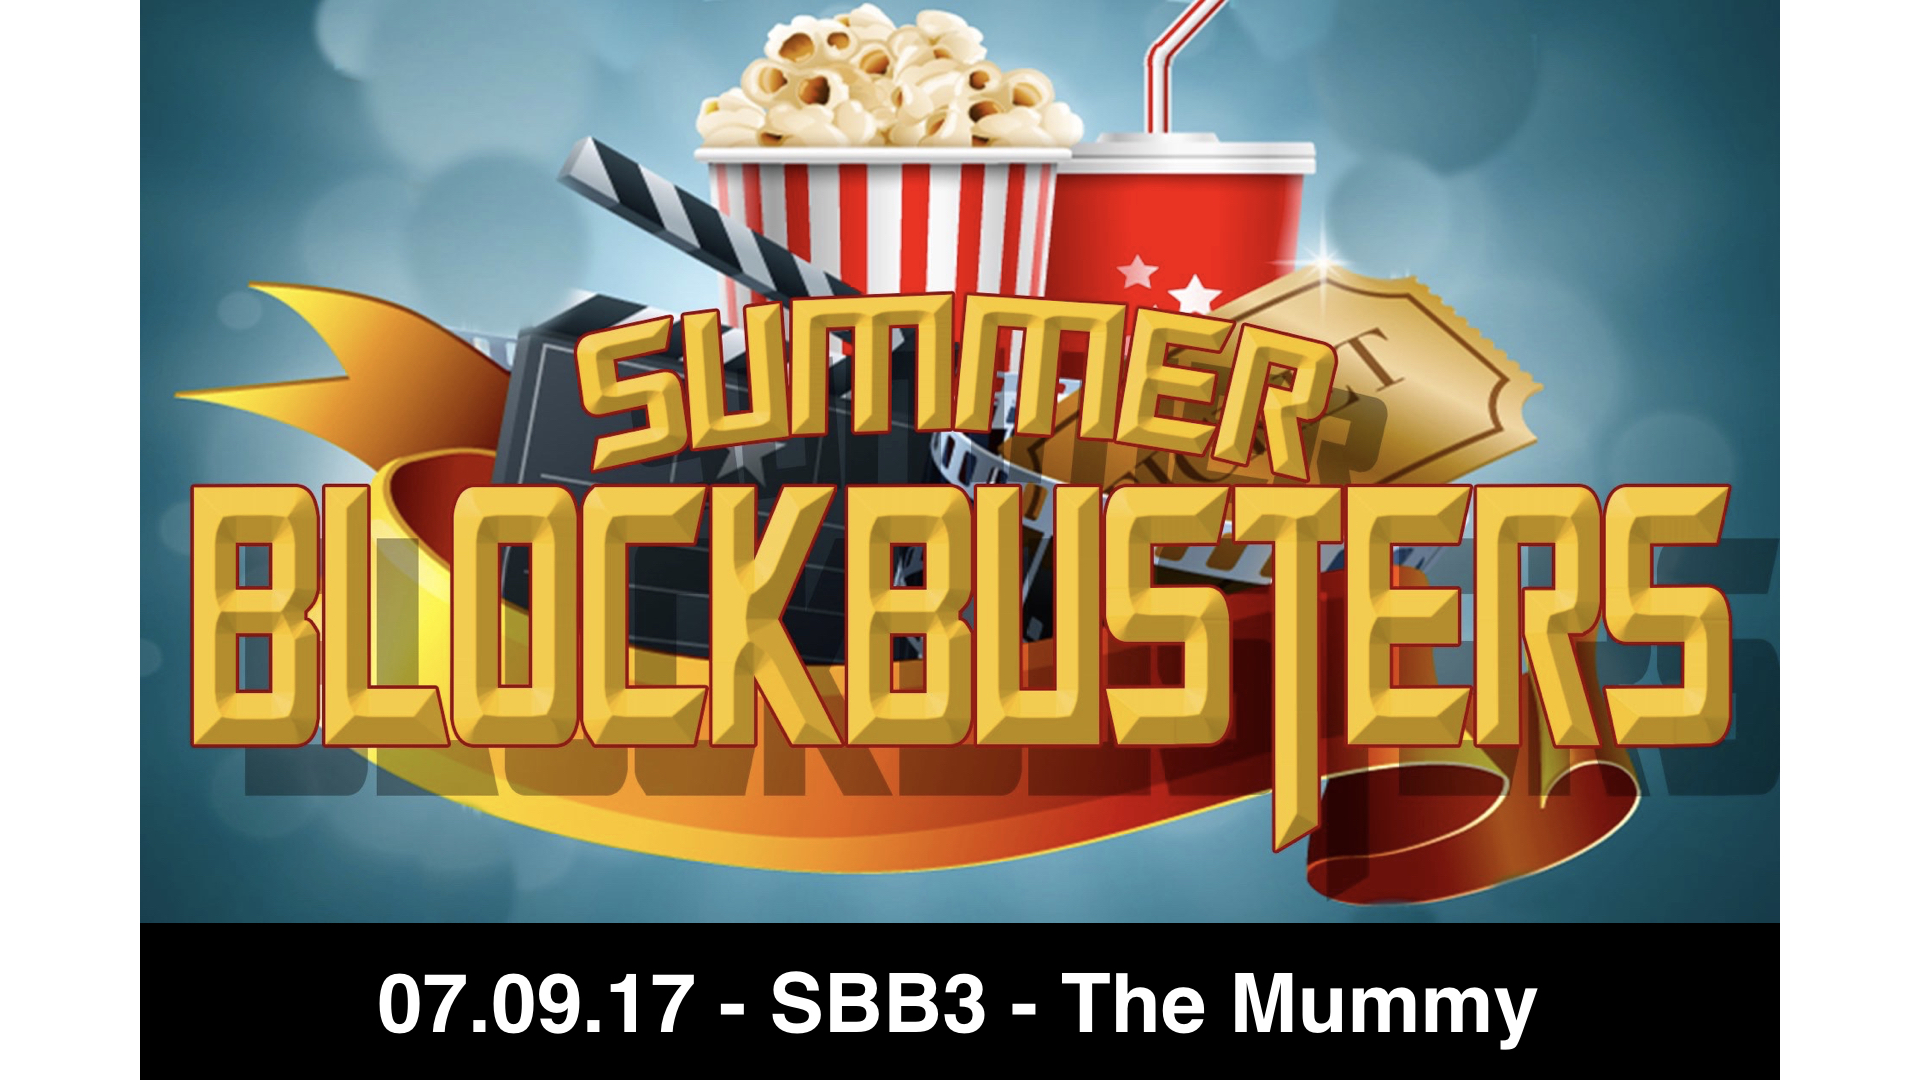 07.09.17 - SBB3 - The Mummy